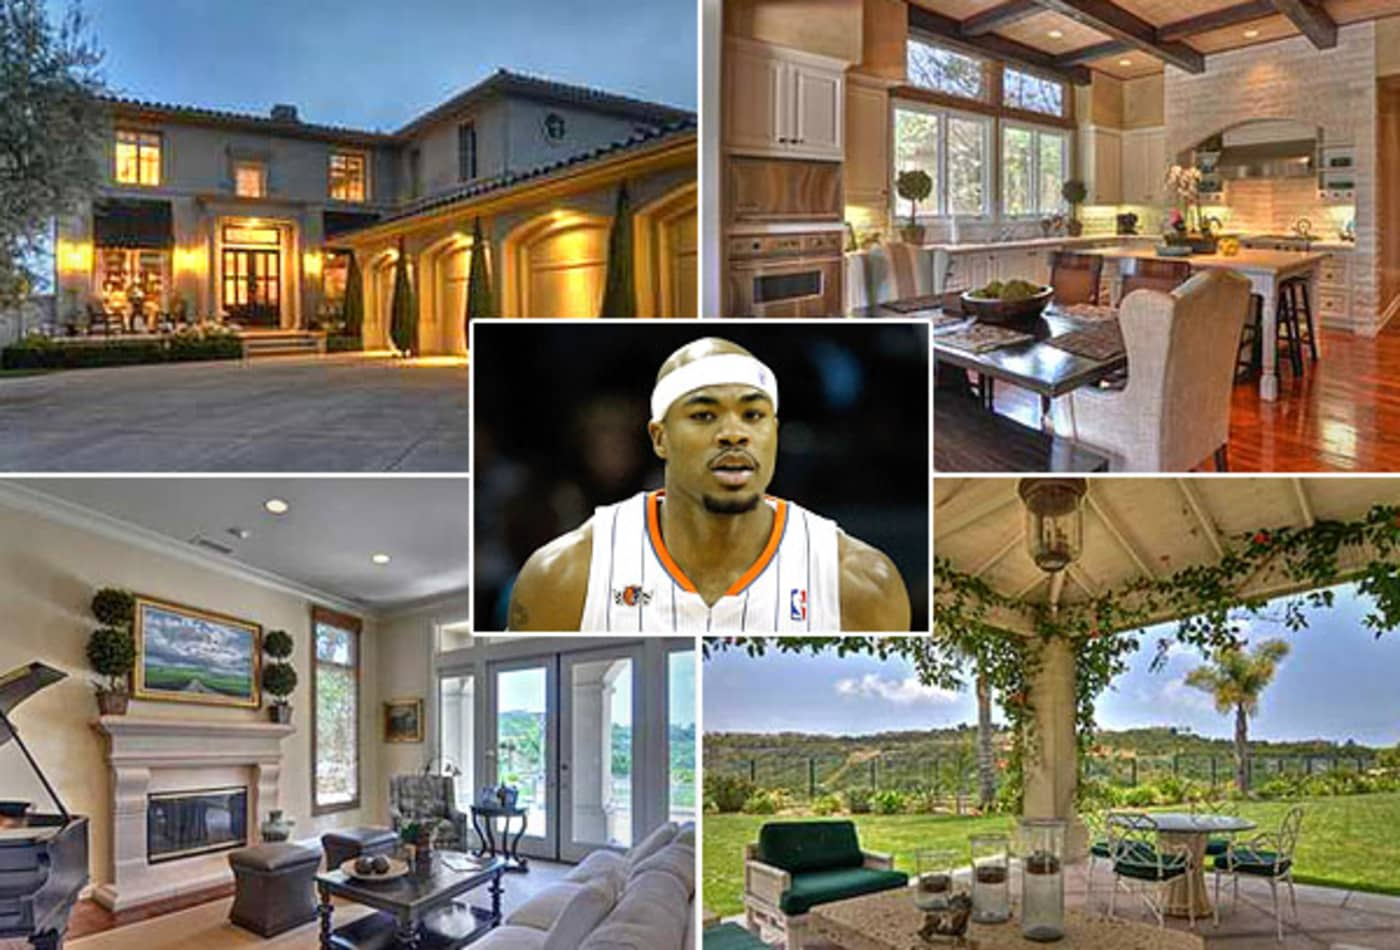 Corey-Maggette-Homes-of-NBA-Stars-CNBC.jpg